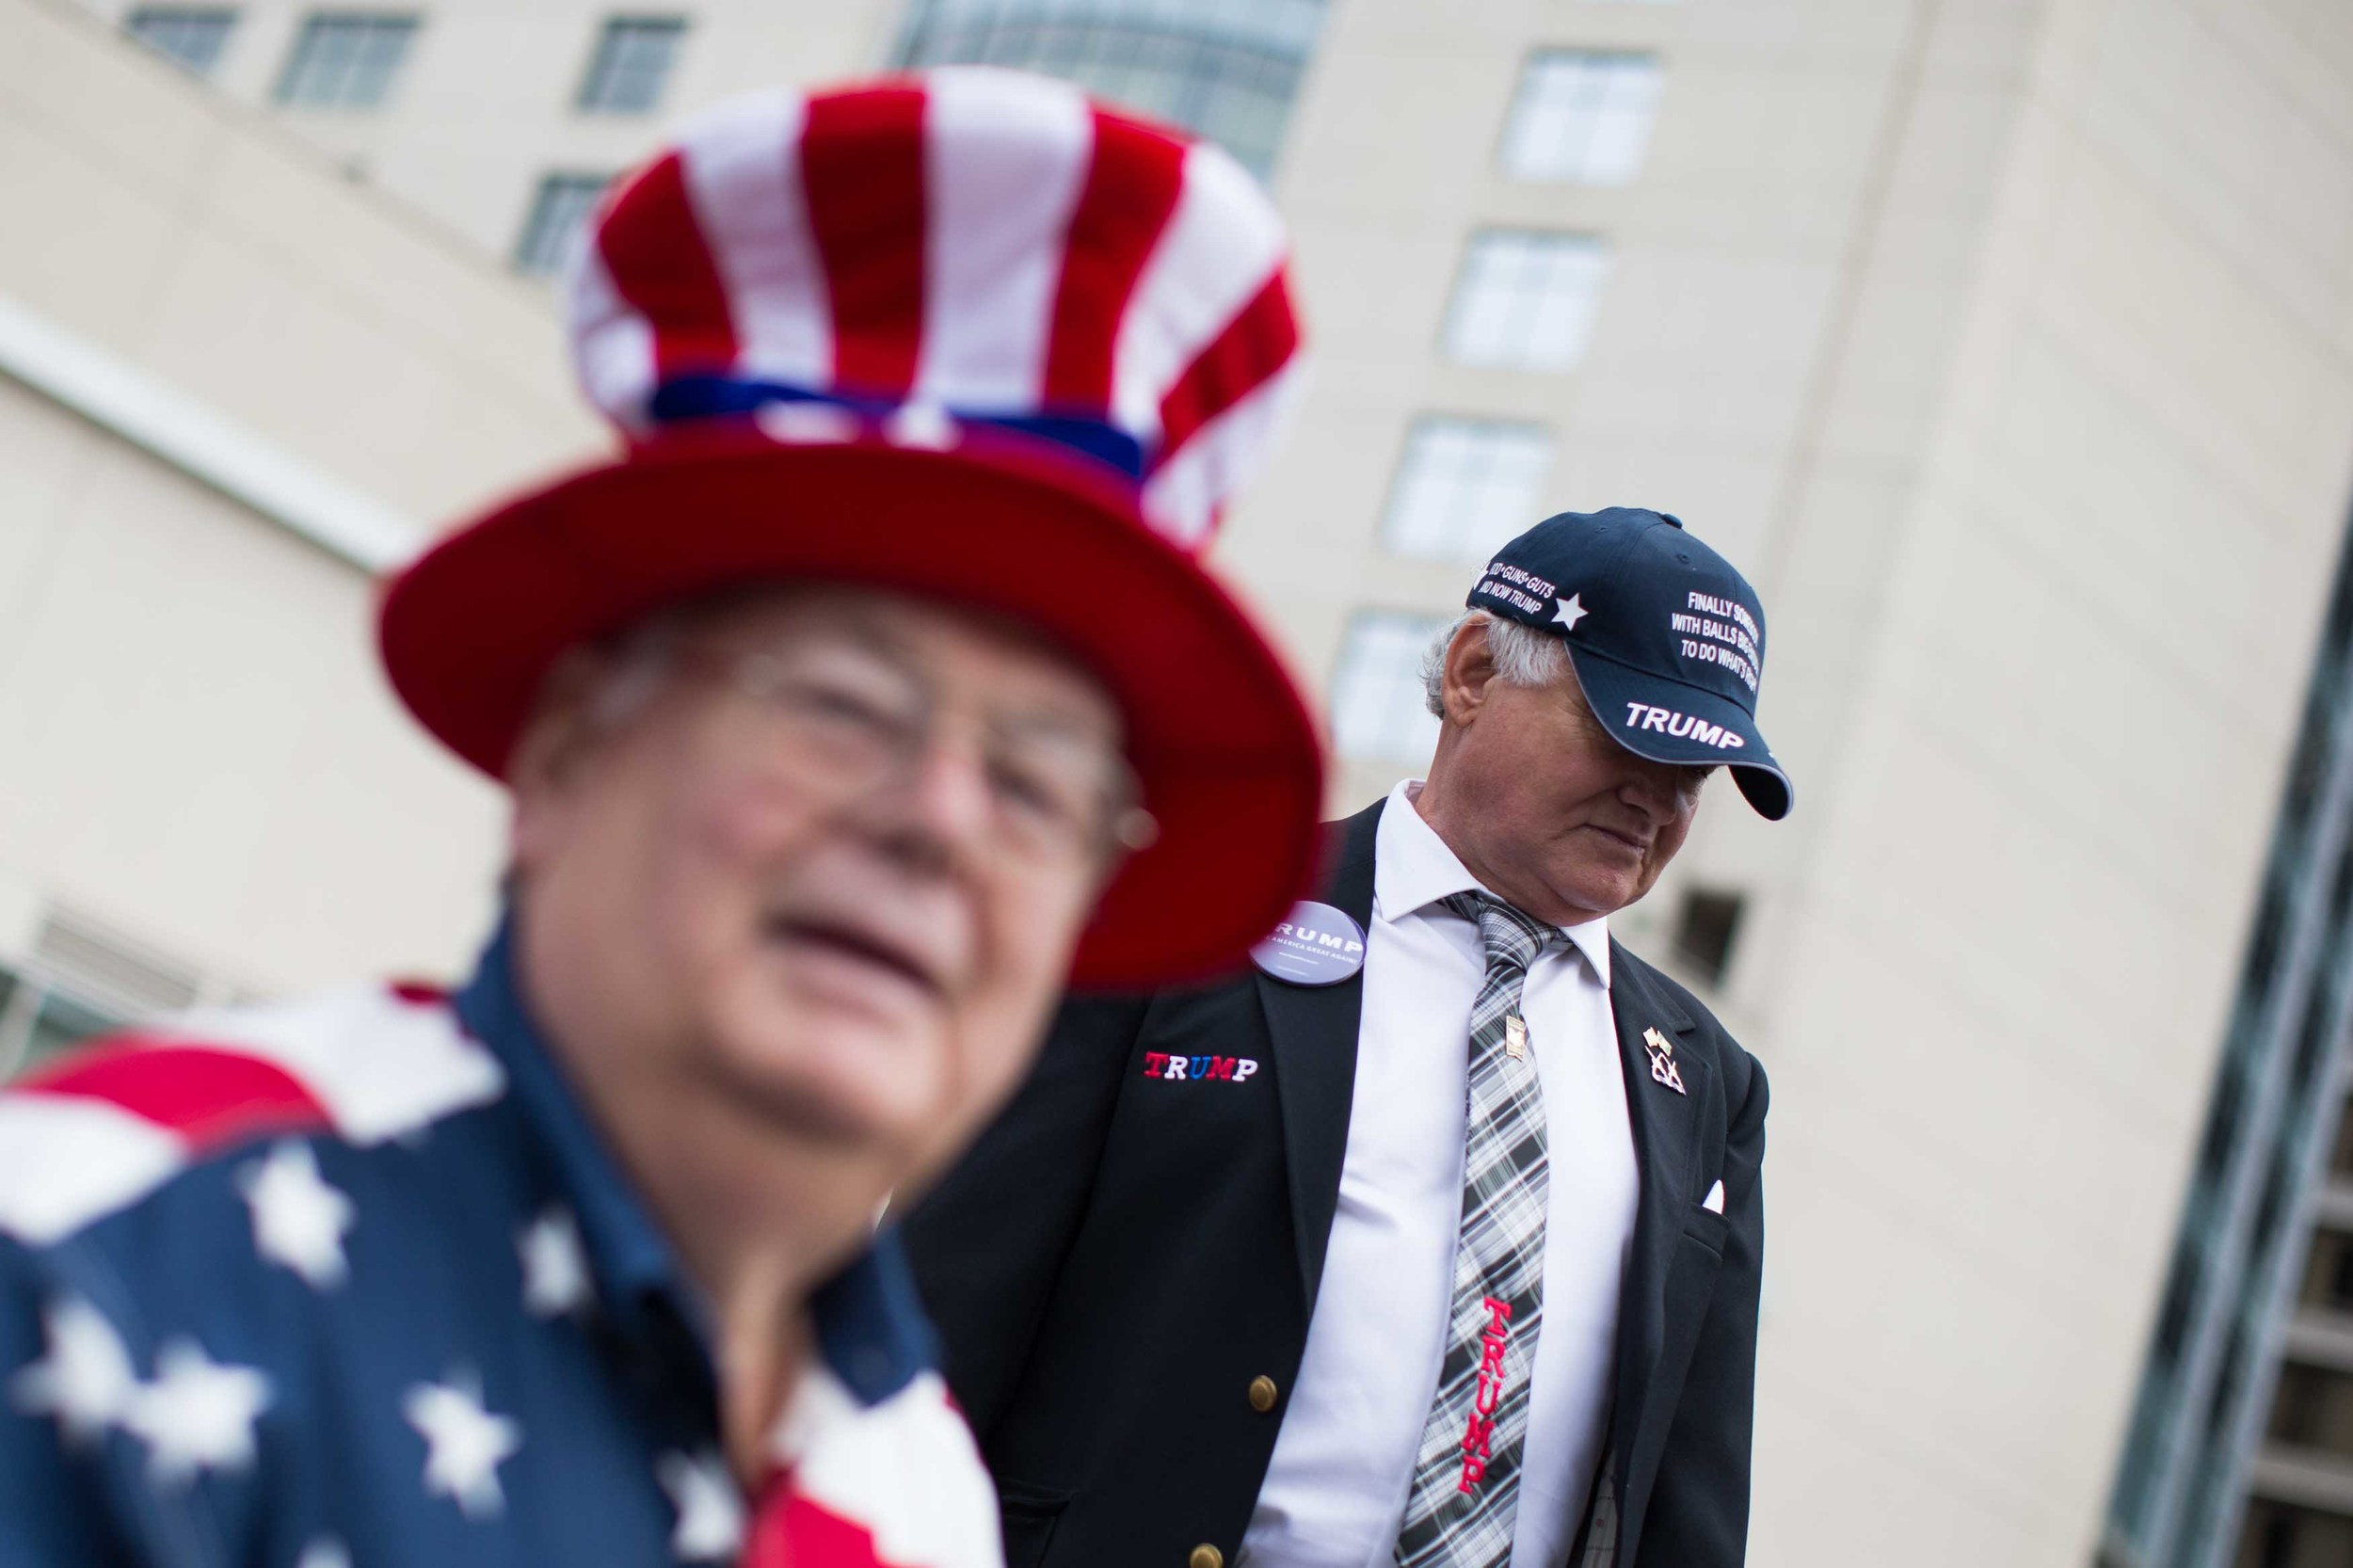 Danny Merck, right, and Ed Edwards wait in line to see Republican presidential candidate Donald Trump speak at a campaign rally at the Georgia World Congress Center, February 21, 2016 in Atlanta, Georgia. Trump won decisively in the South Carolina Republican Presidential Primary, the 'first in the south.'  Branden Camp/Getty Images